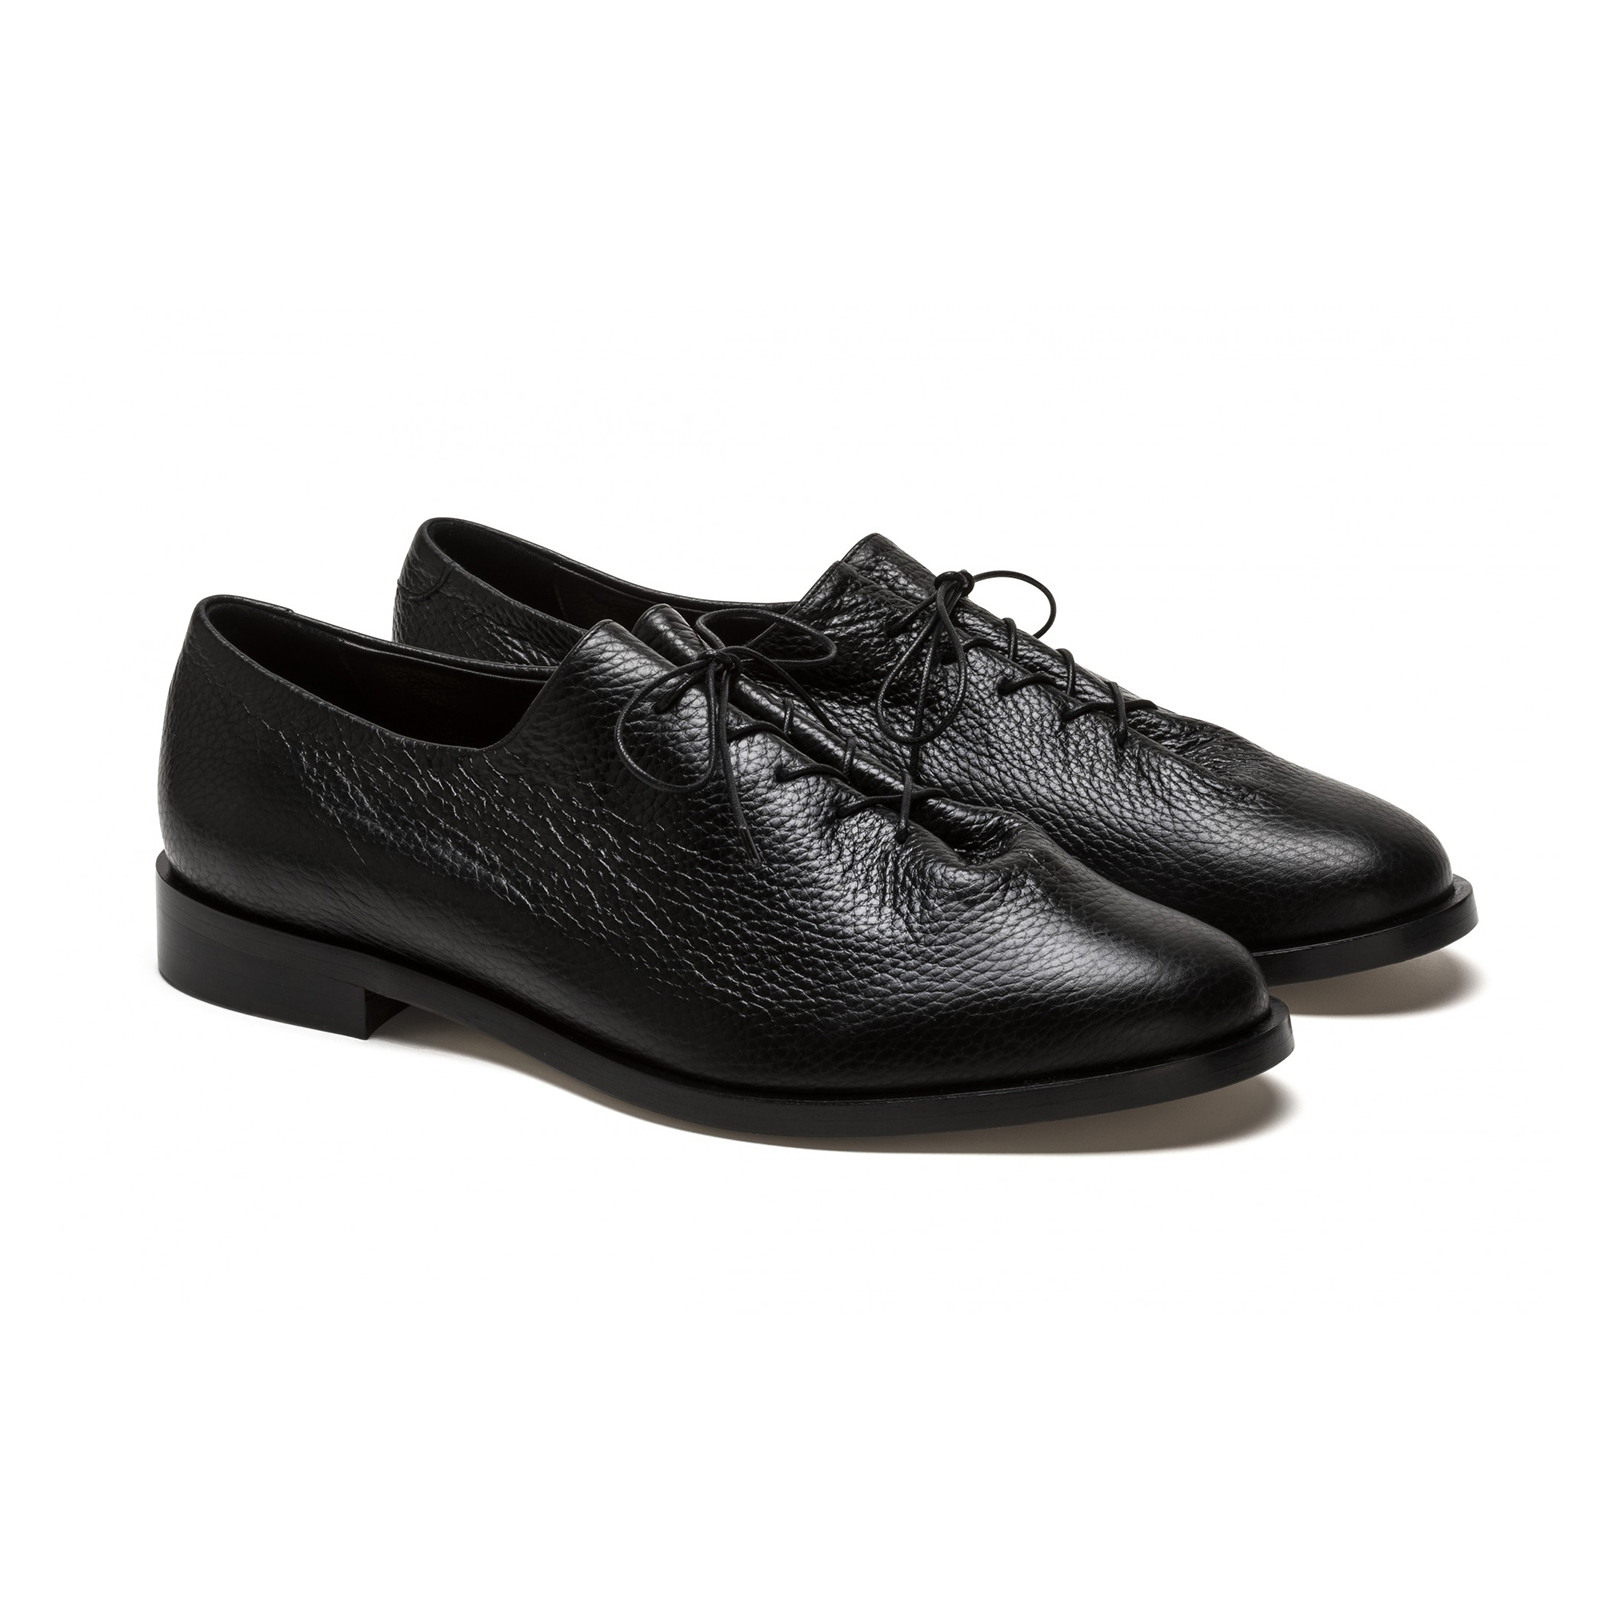 BlackLeatherDressShoes